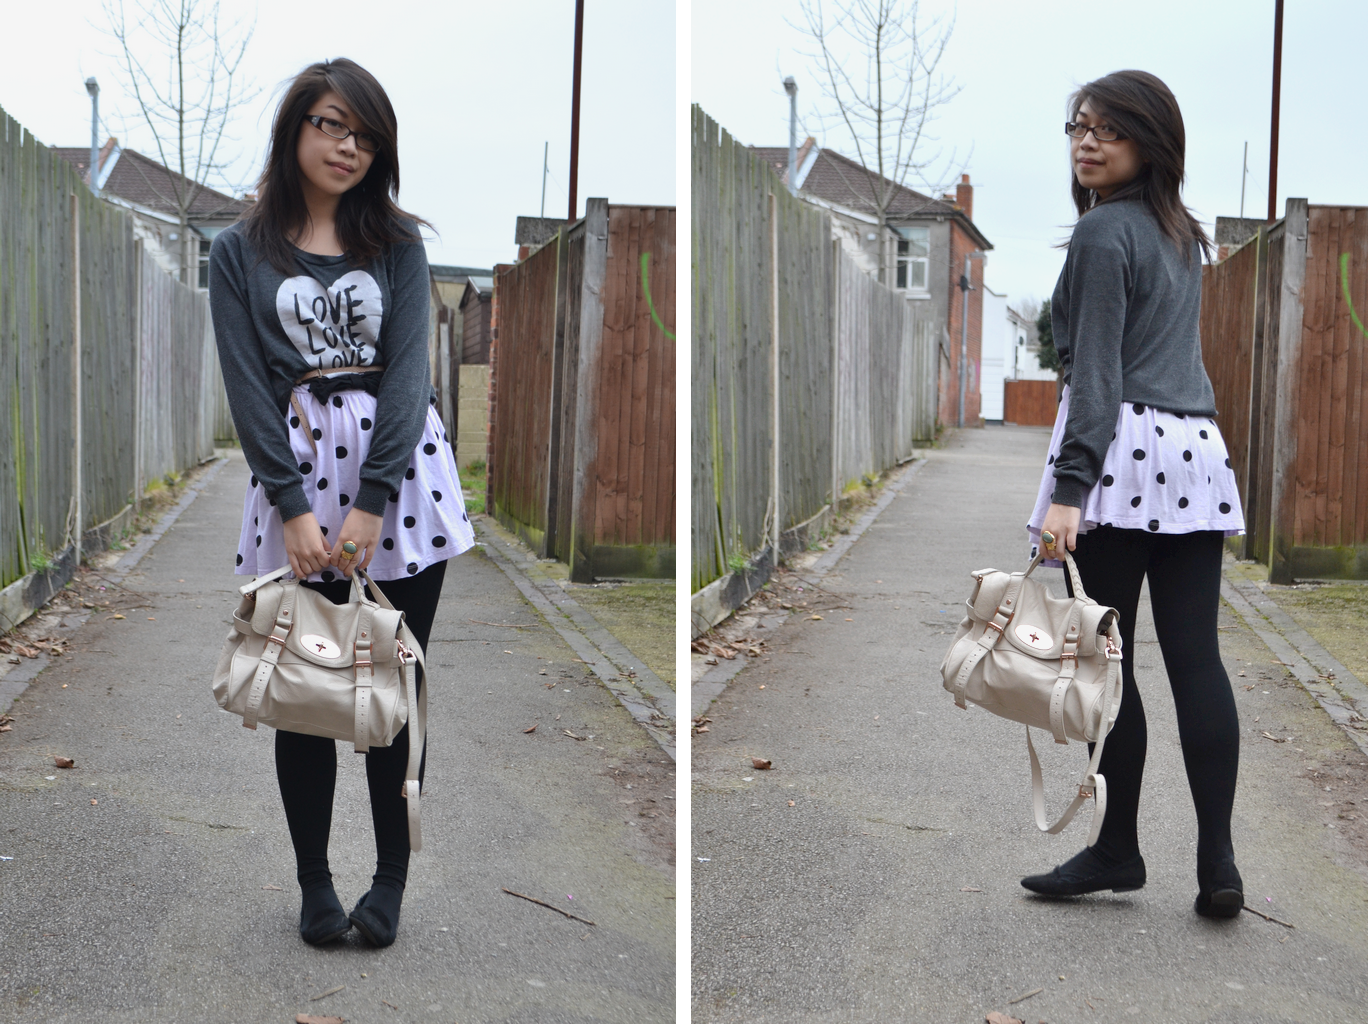 daisybutter - UK Style Blog: what i wore, topshop, primark, everyday style, meadham kirchoff inspired, love love love, taylor swift